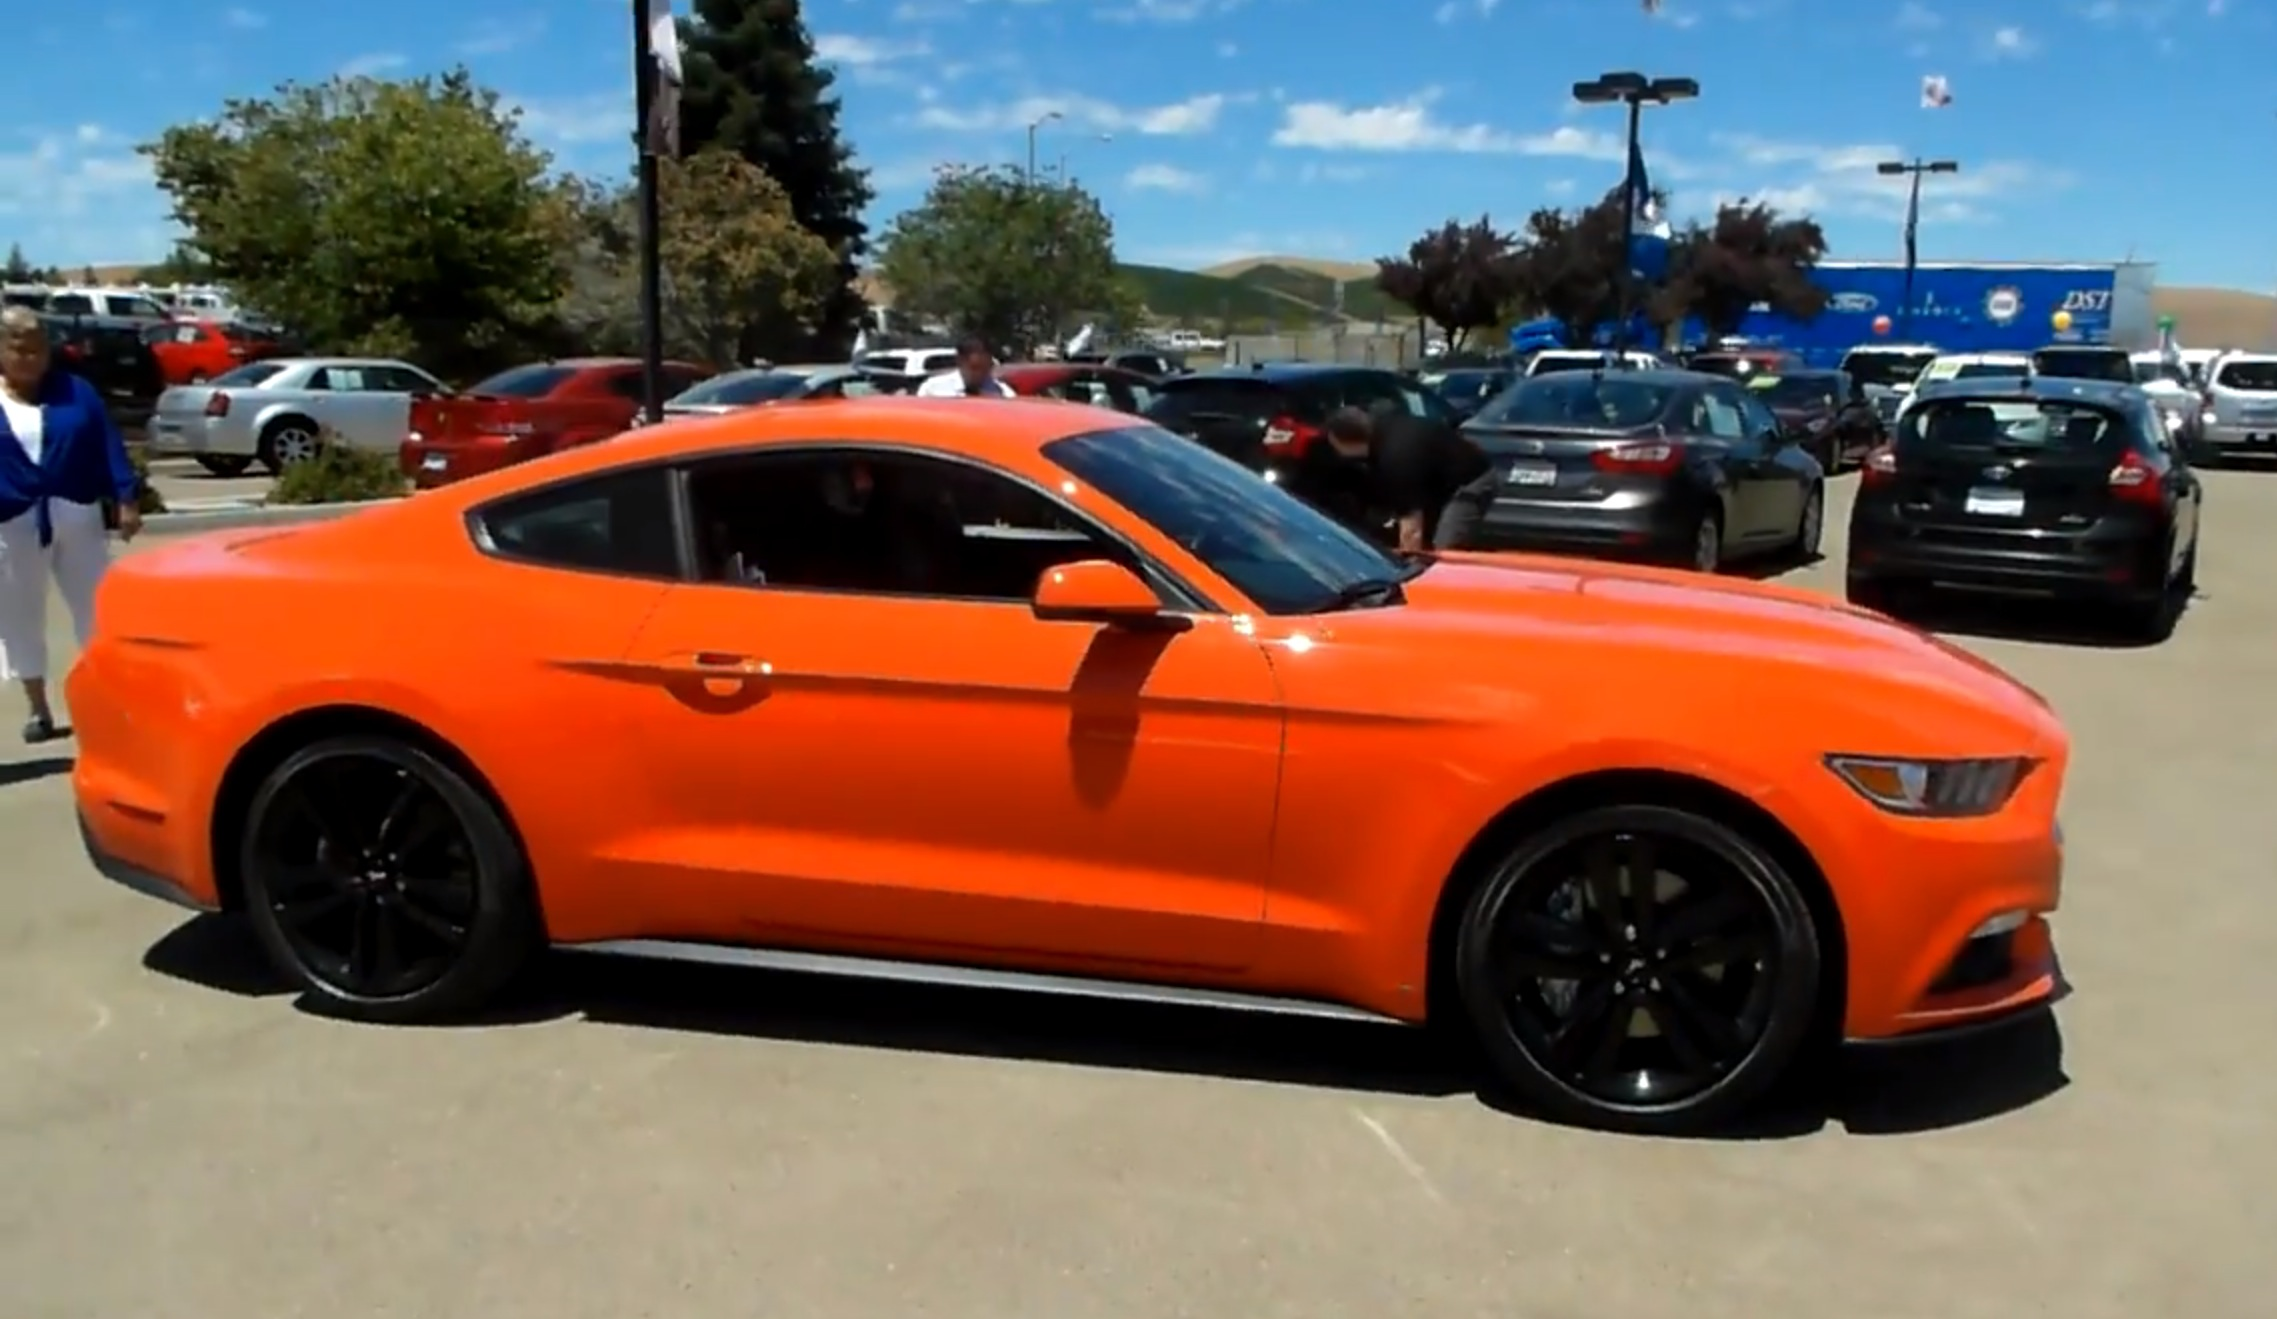 2016 Mustang V6 Exhaust >> Competition Orange 2015 Mustang Arrives at Livemore Ford for Sneak Peek | 2015+ Mustang Forum ...